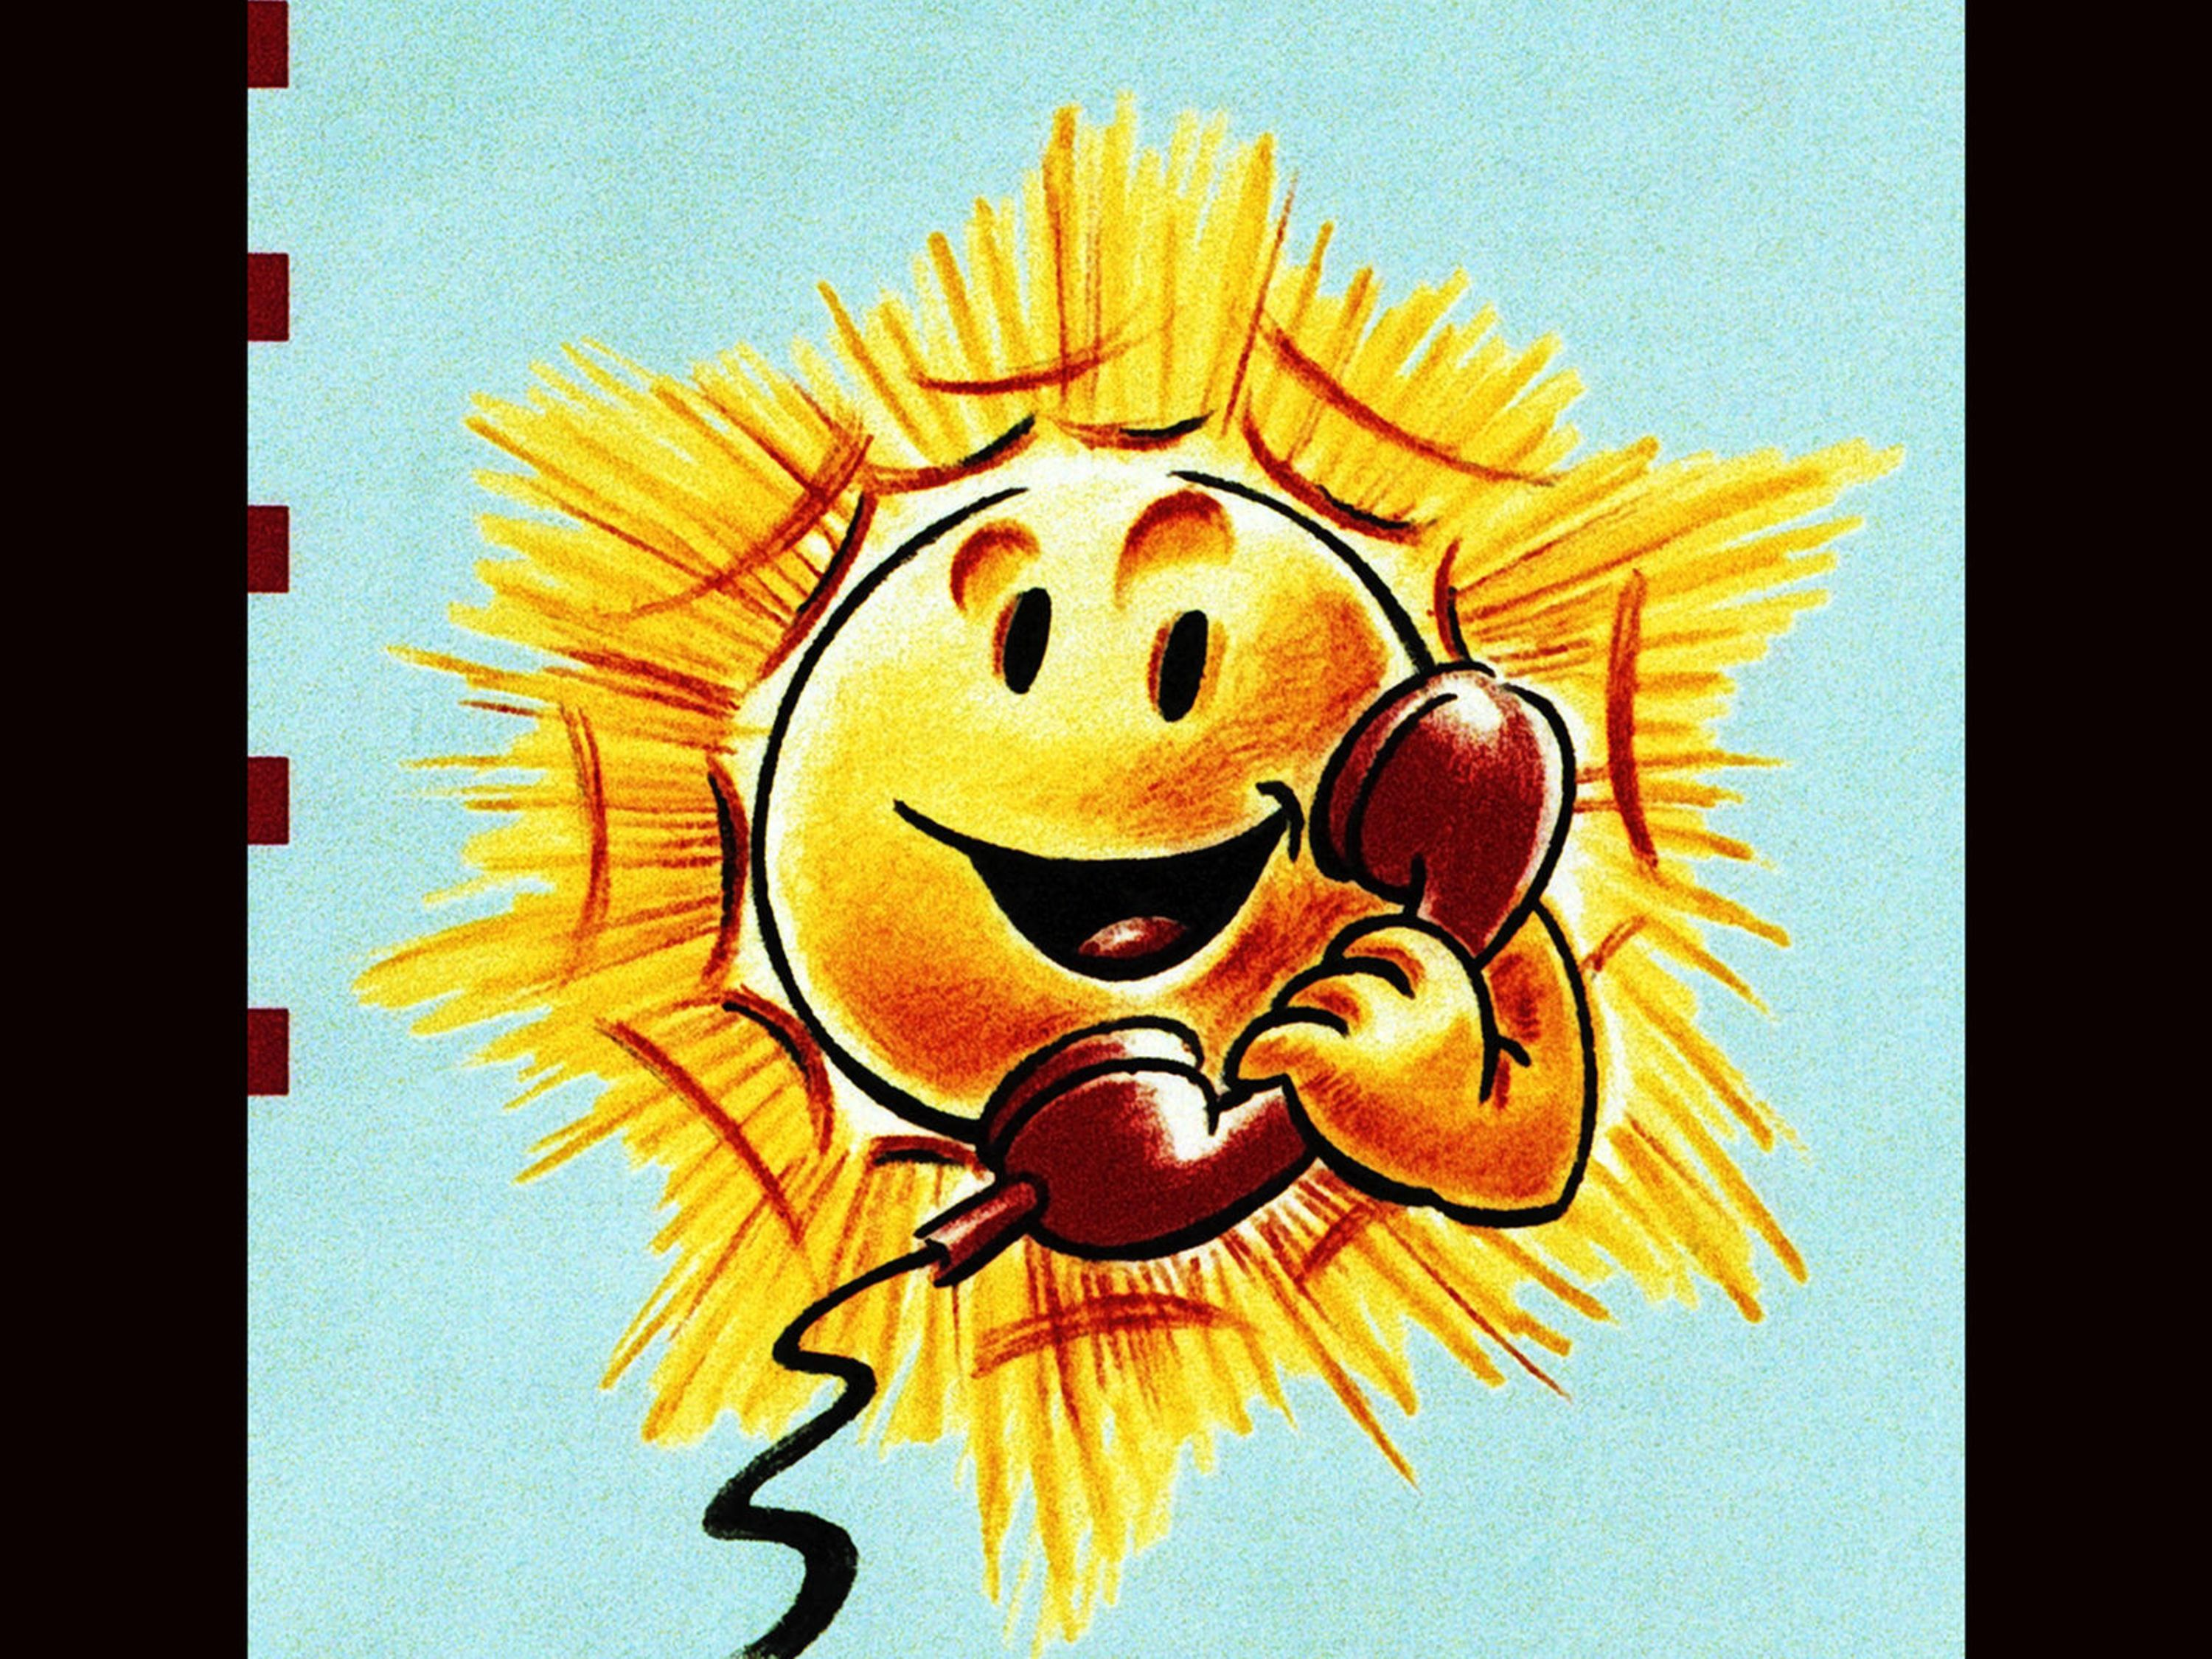 The information sheet for the 1996 rates, with a smiling sun with a telephone.